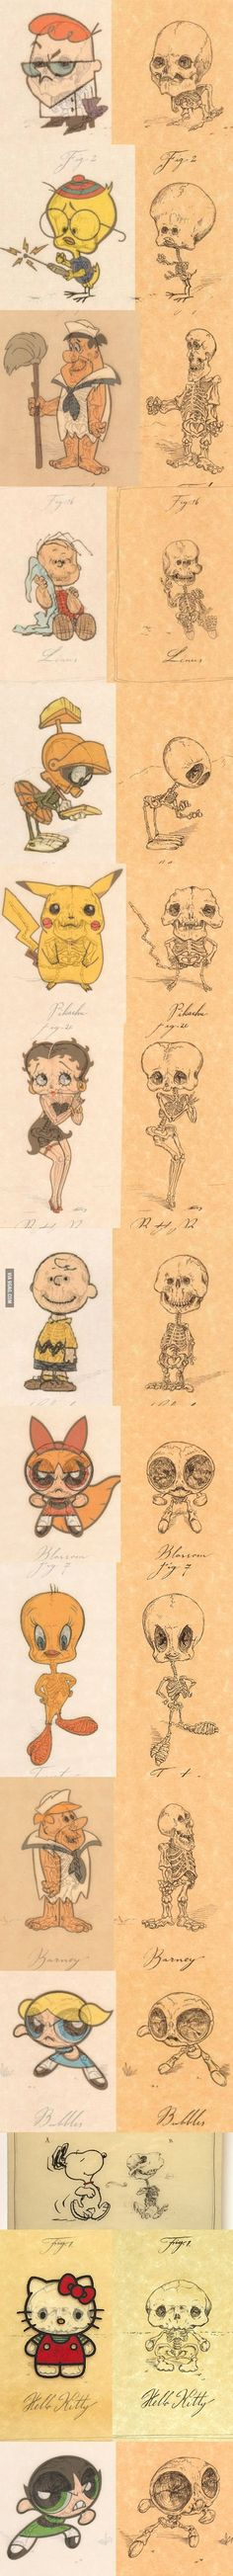 Anatomy of Cartoon Characters - by Michael Paulus